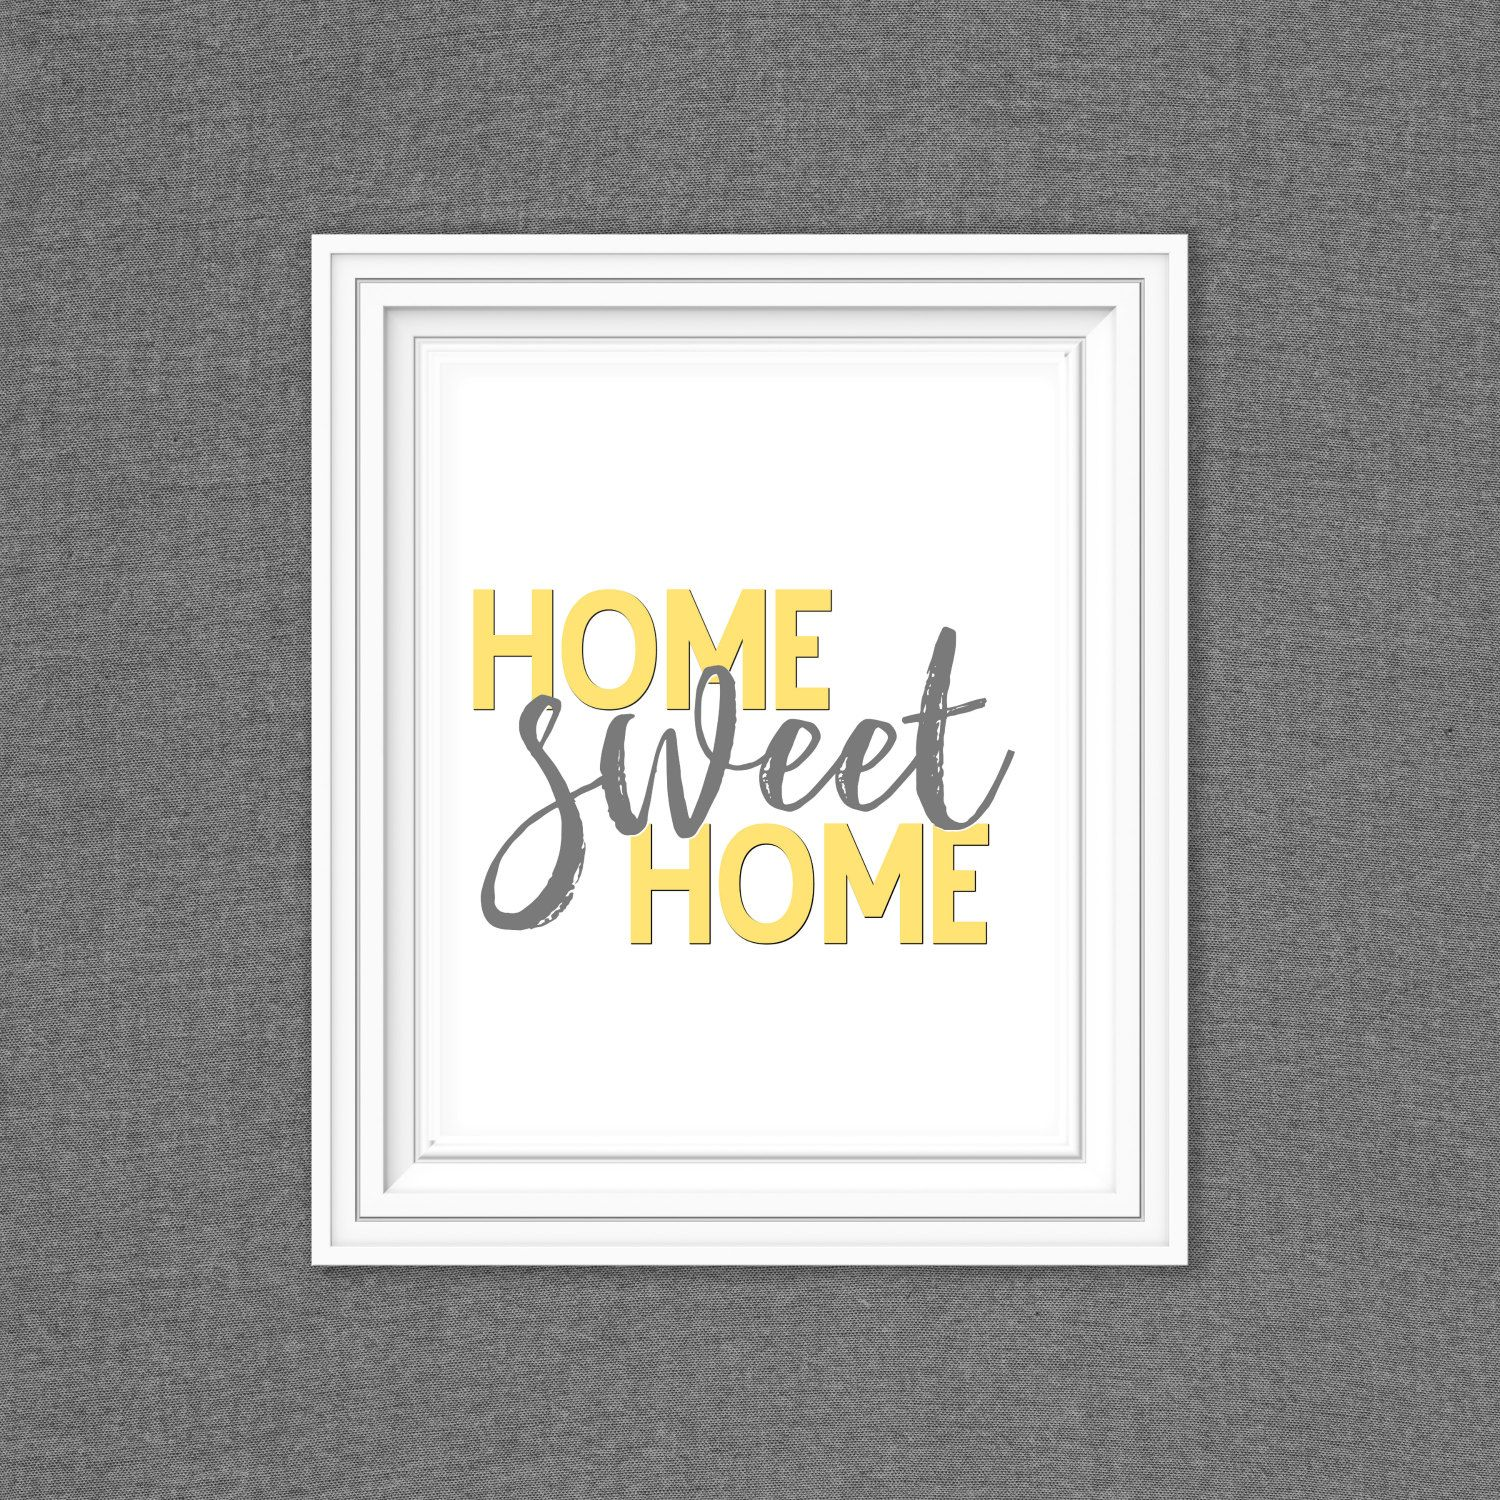 8x10 Home Sweet Home by Mimileeprintables on Etsy